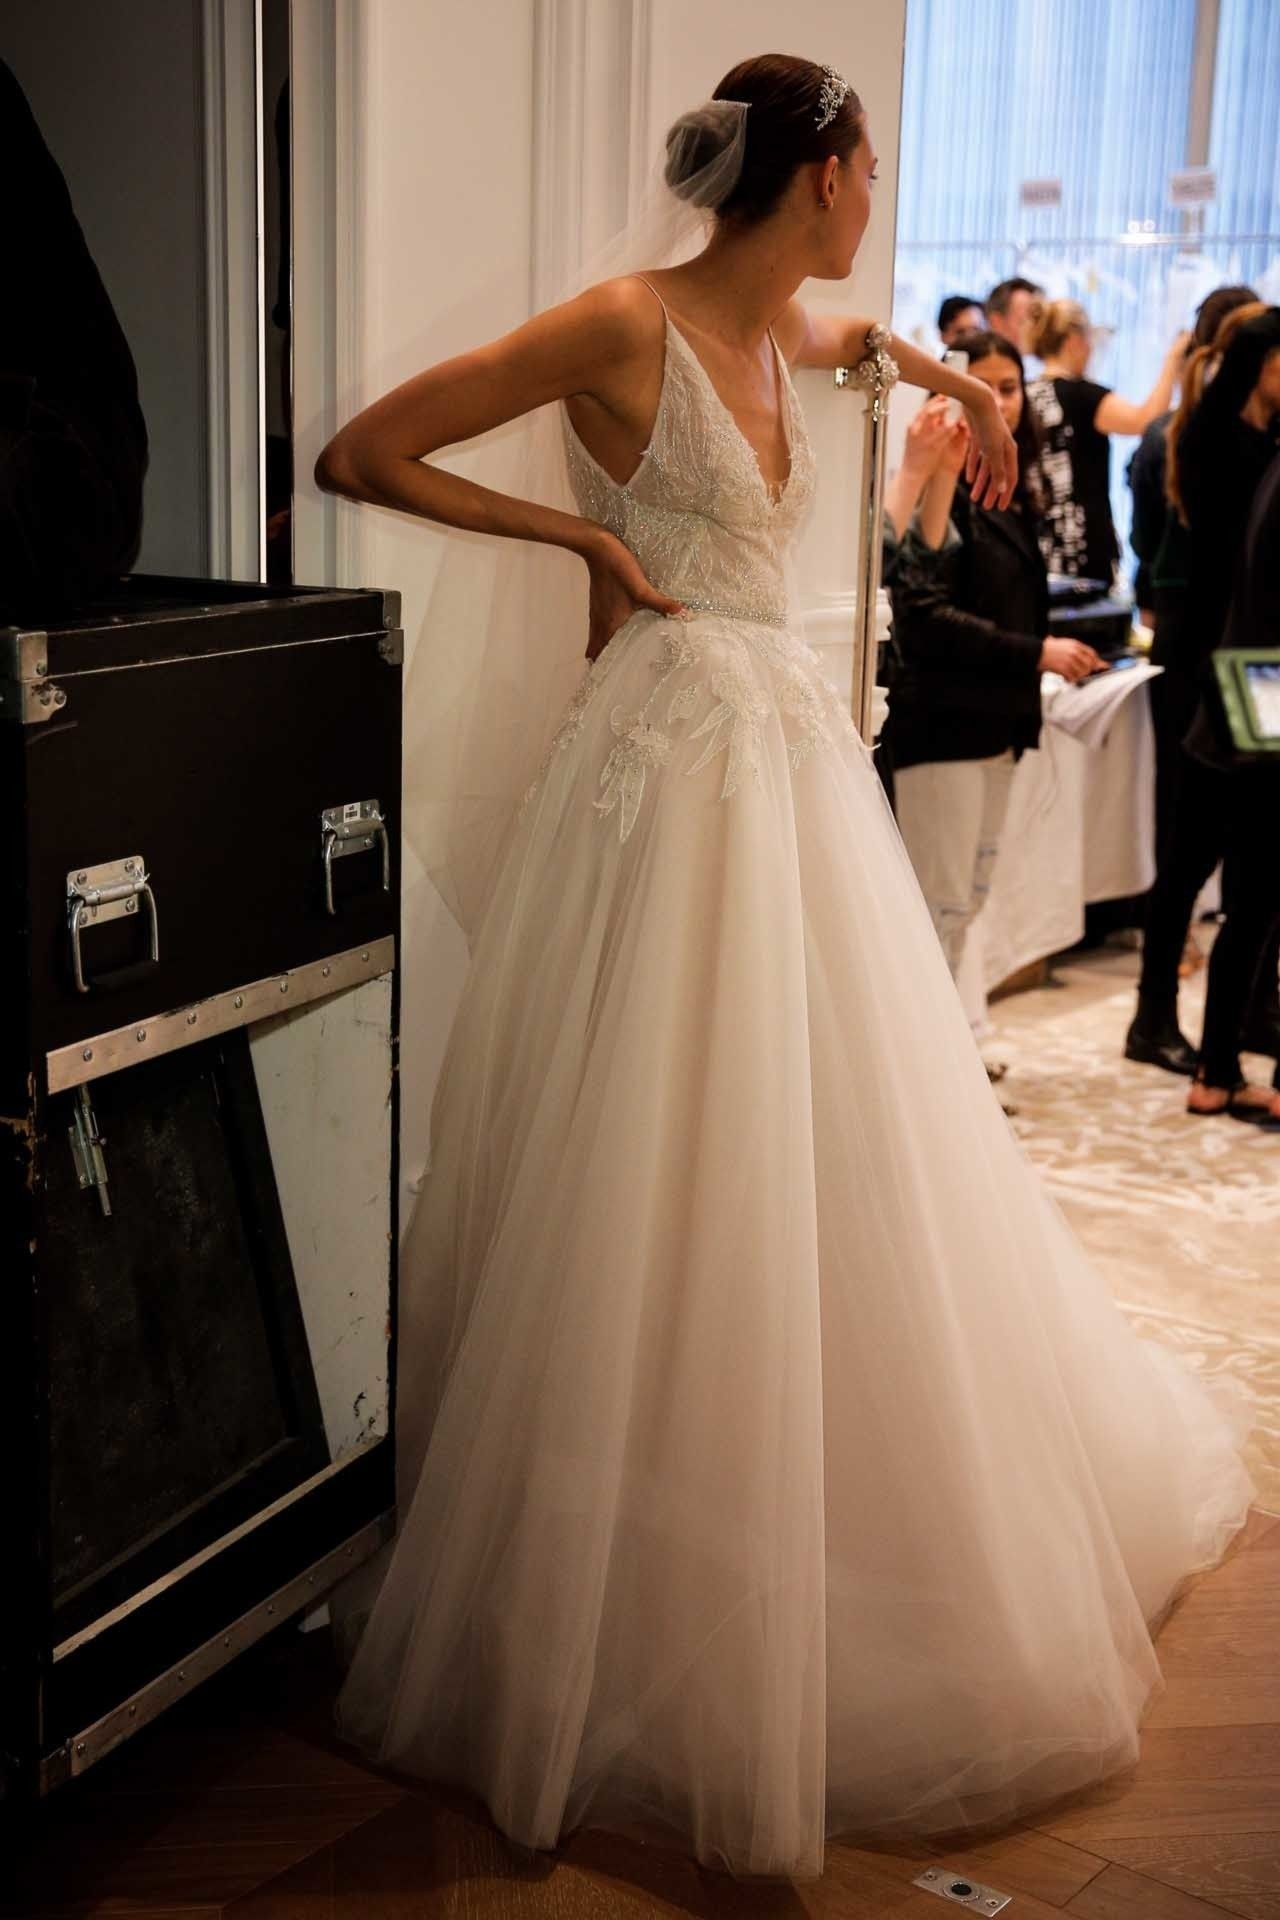 11 wedding dresses you wouldn t say no to from bridal fashion week